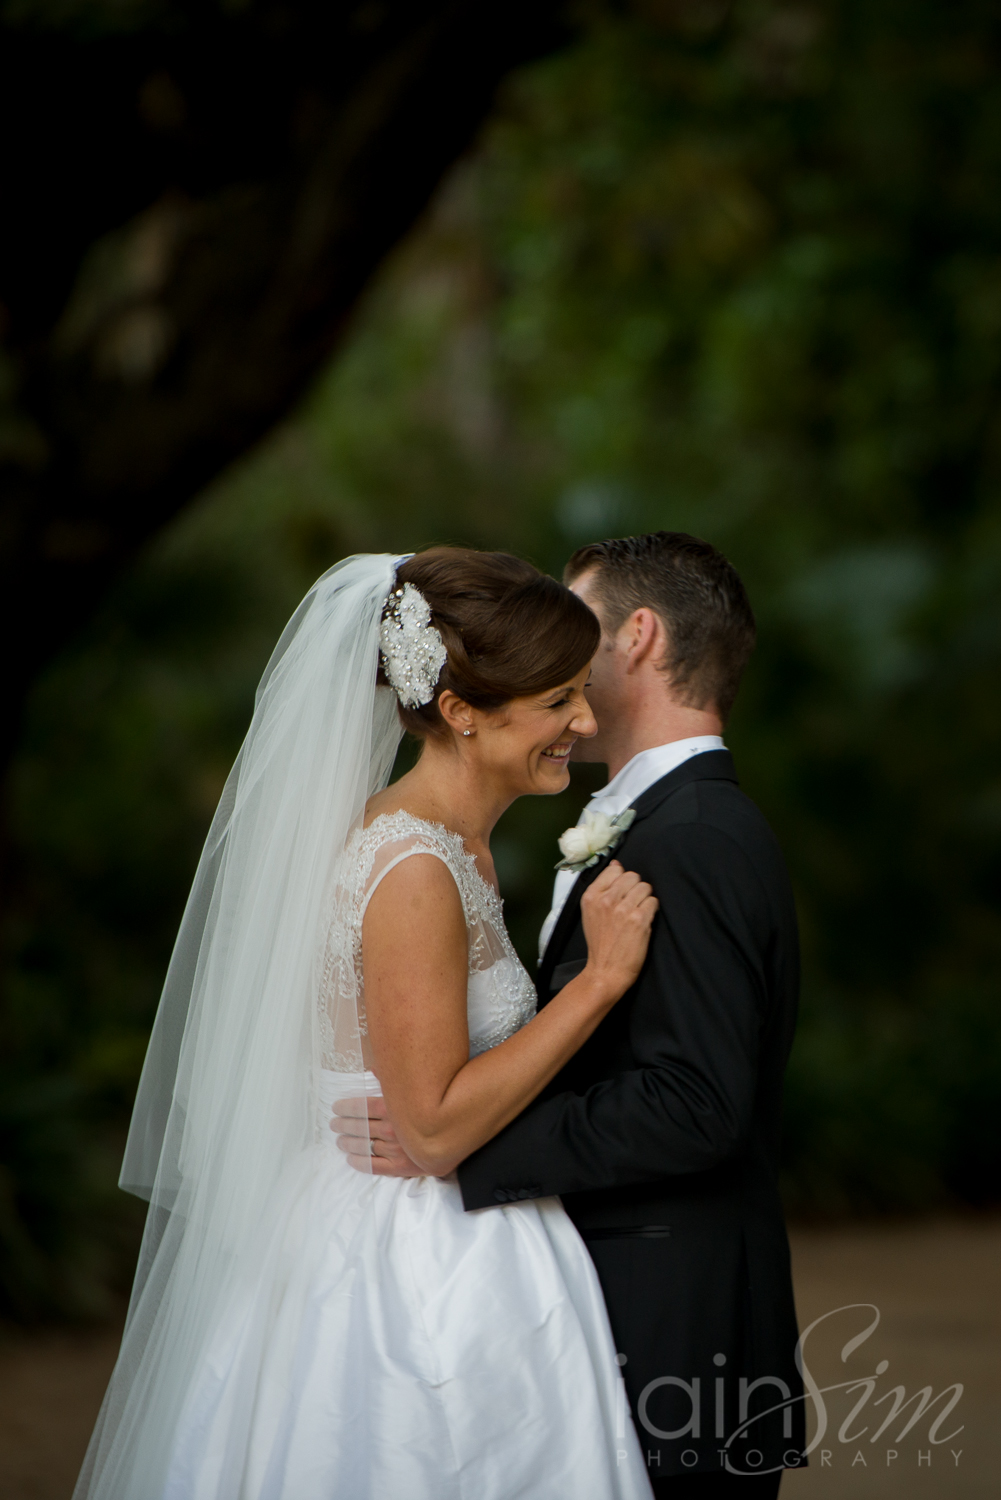 wpid-Katherine-and-Marks-RipponLea-Wedding-by-Iain-Sim-Photography_023.jpg